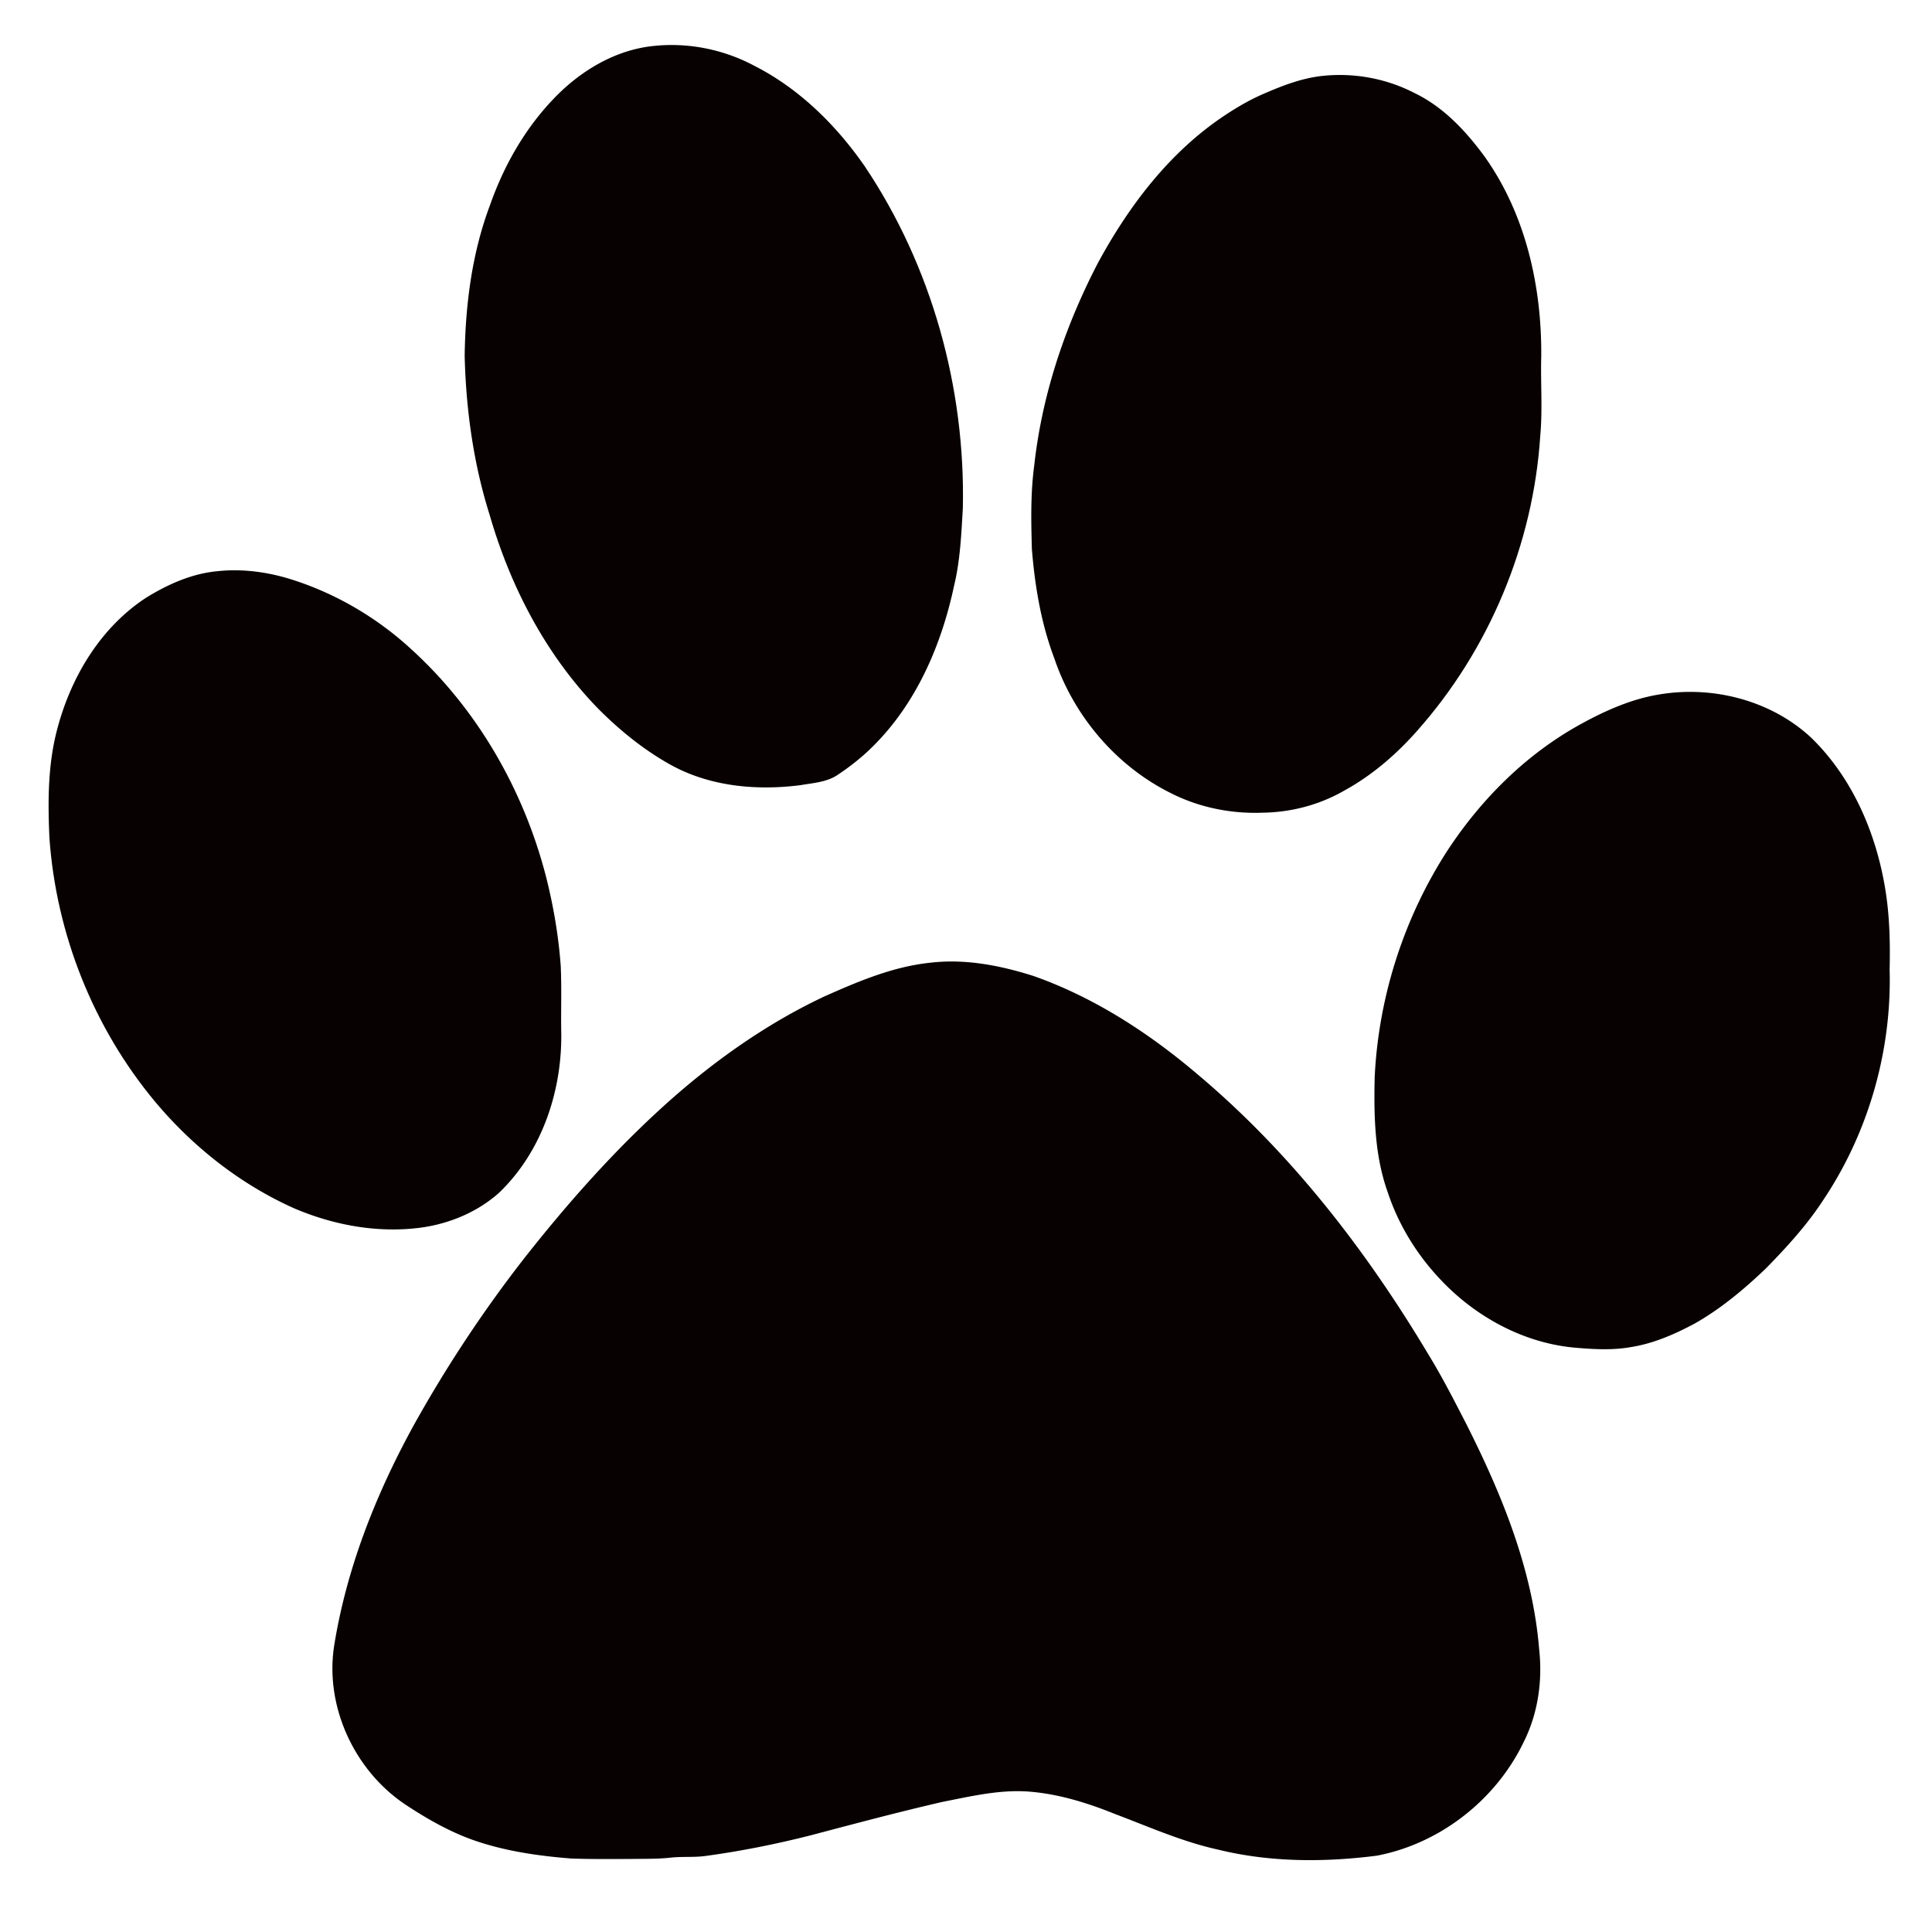 Tiger Paw Print Clip Art: Pictures Of Tiger Paw Prints ...